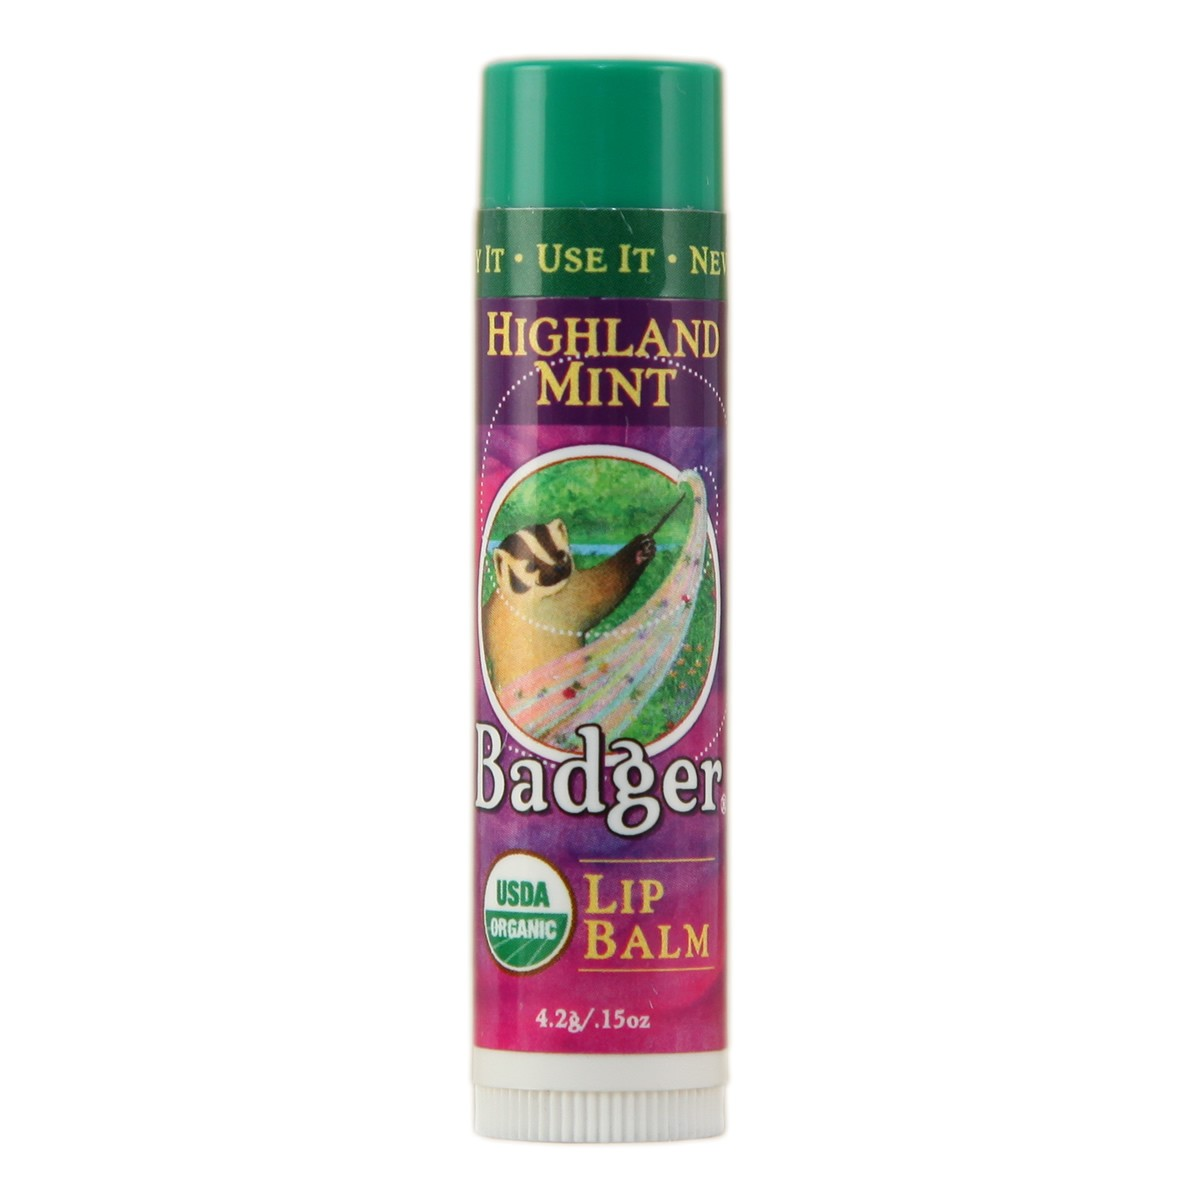 Badger Balm Highland Mint Lip Balm